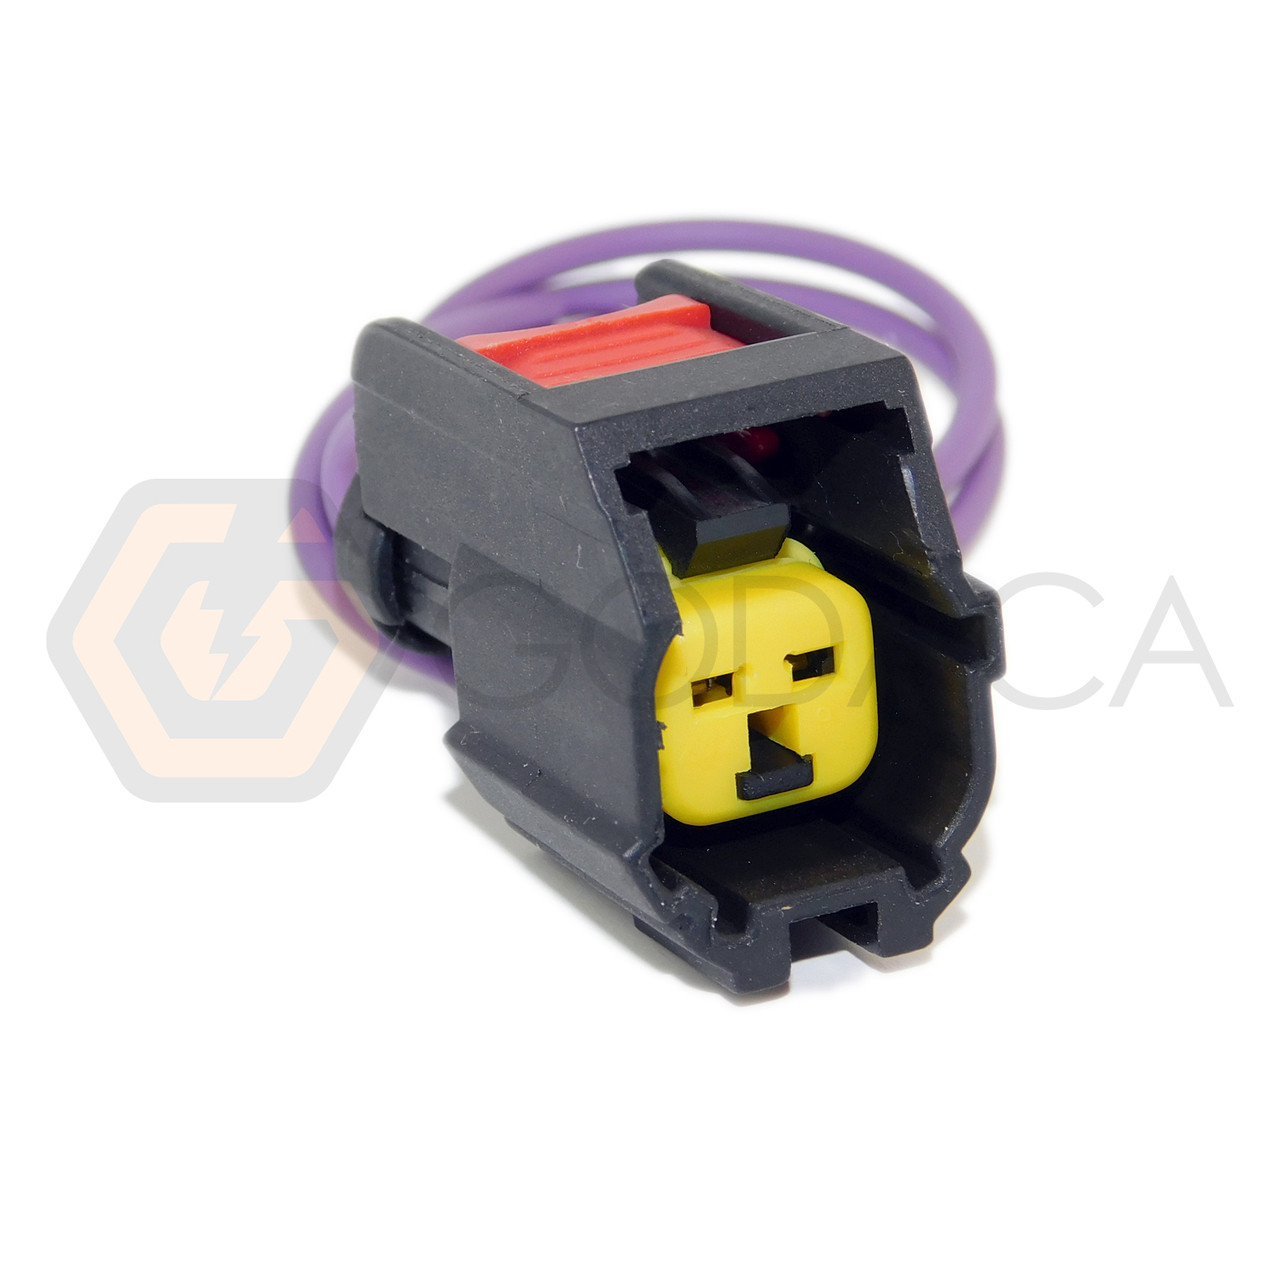 1 x connector pigtail female fuel injector electrical wire harness 2 way godaca llc  [ 1280 x 1280 Pixel ]